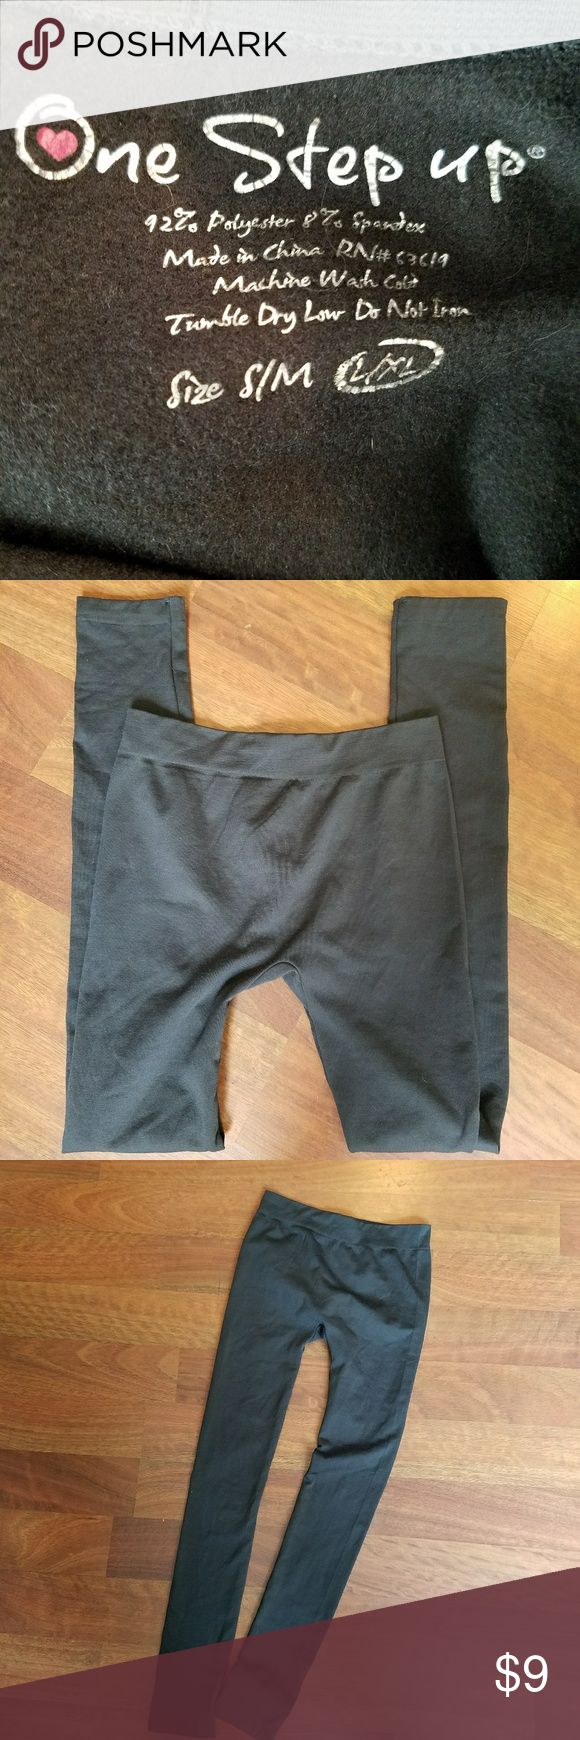 One Step Up Brown Leggings Size S/M These are in MINT shape. Color: Brown Size: L/XL Brand: One Step Up One Step Up Bottoms Leggings